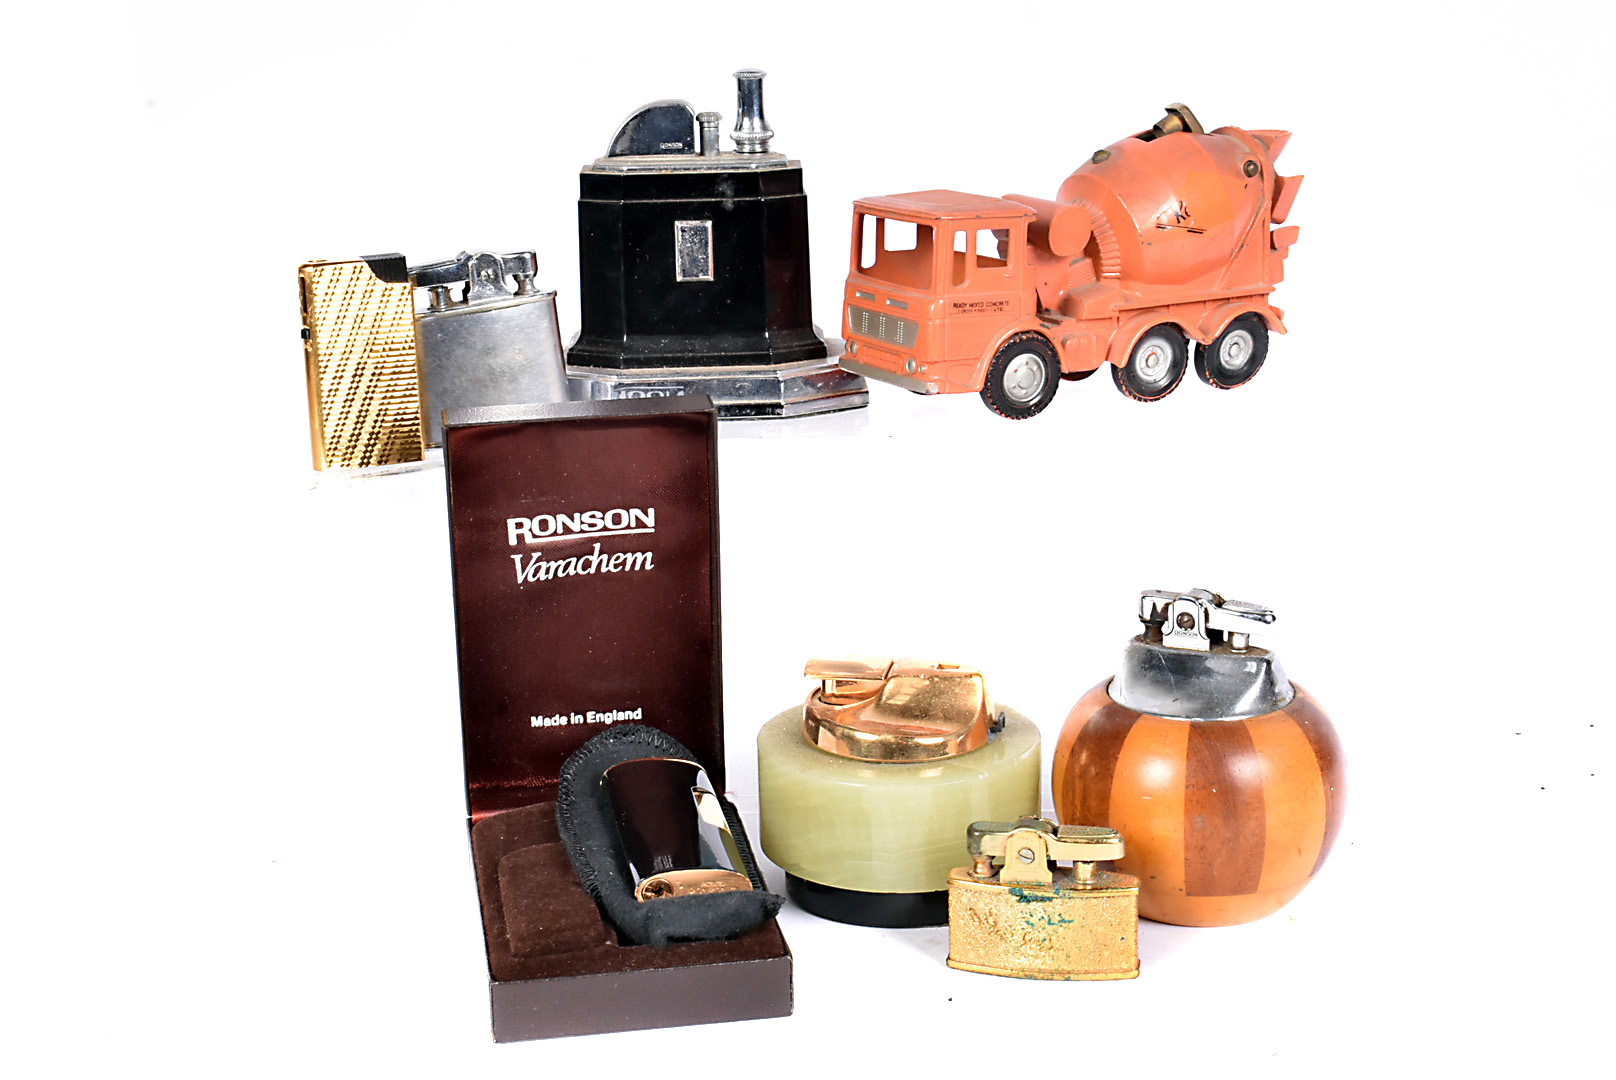 A small collection of Ronson lighters, including a Standard and table touch-tip, together with a